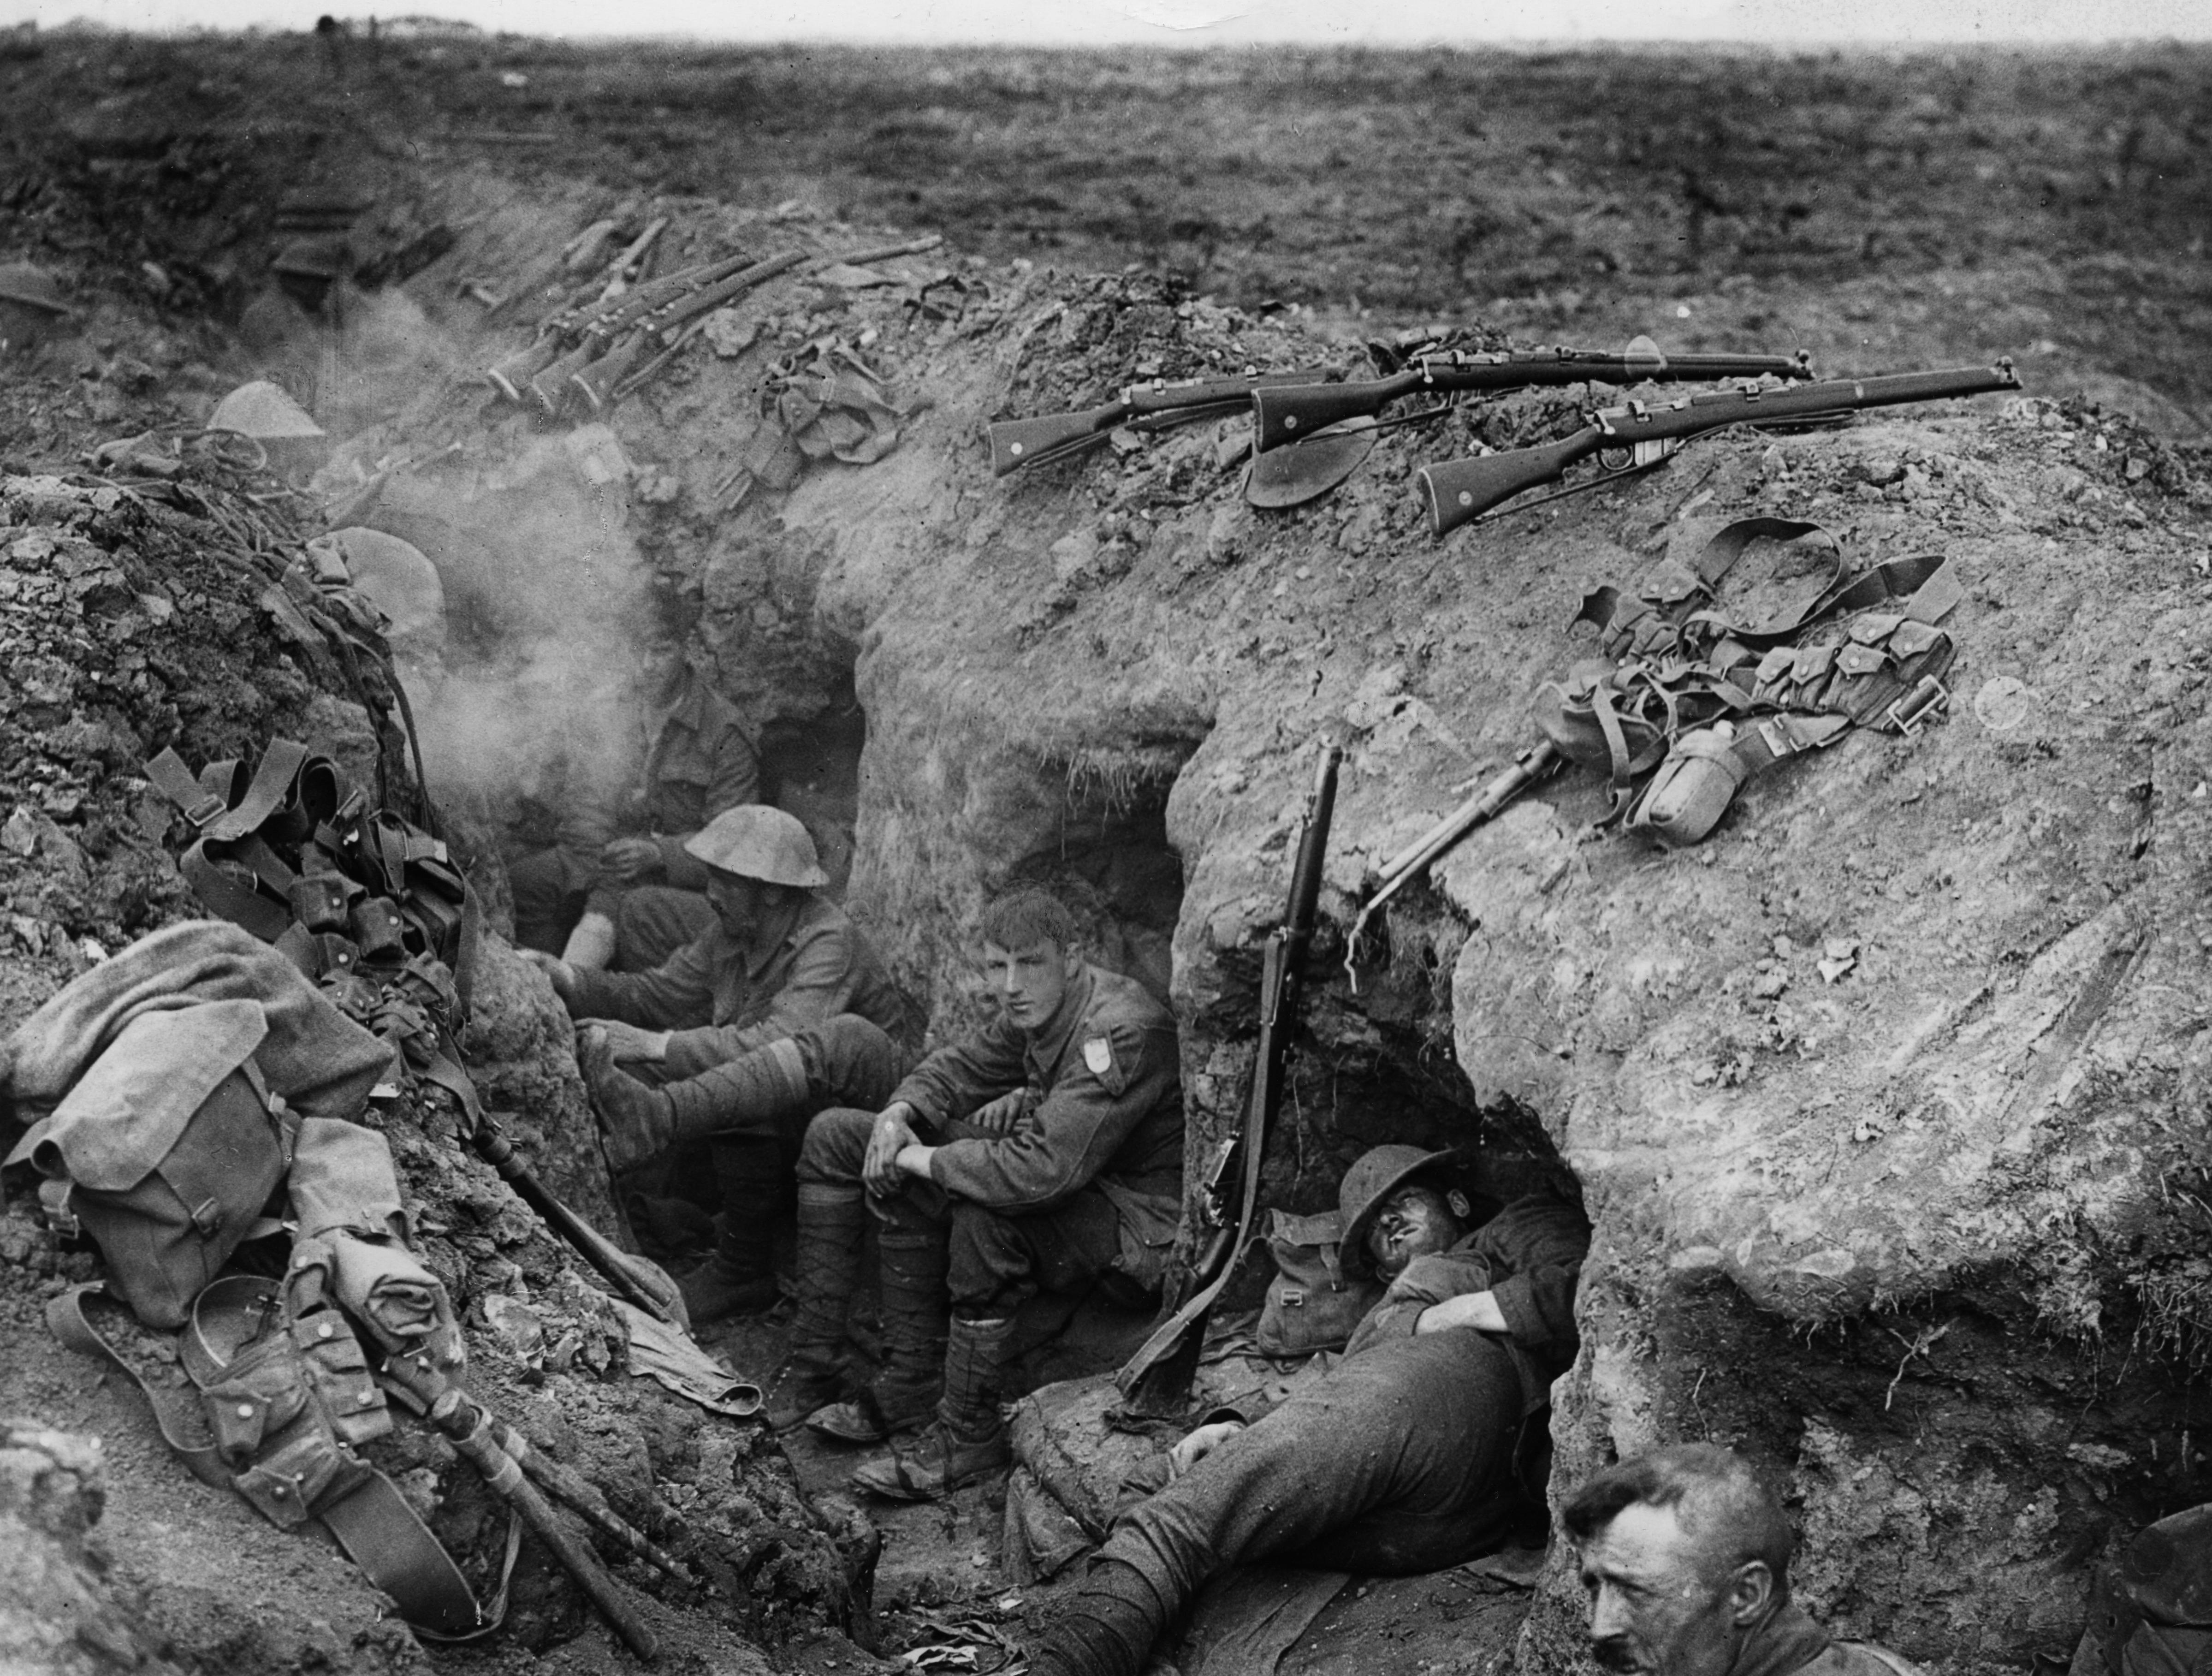 Scenes from the Somme: surreal, sickening spectacle